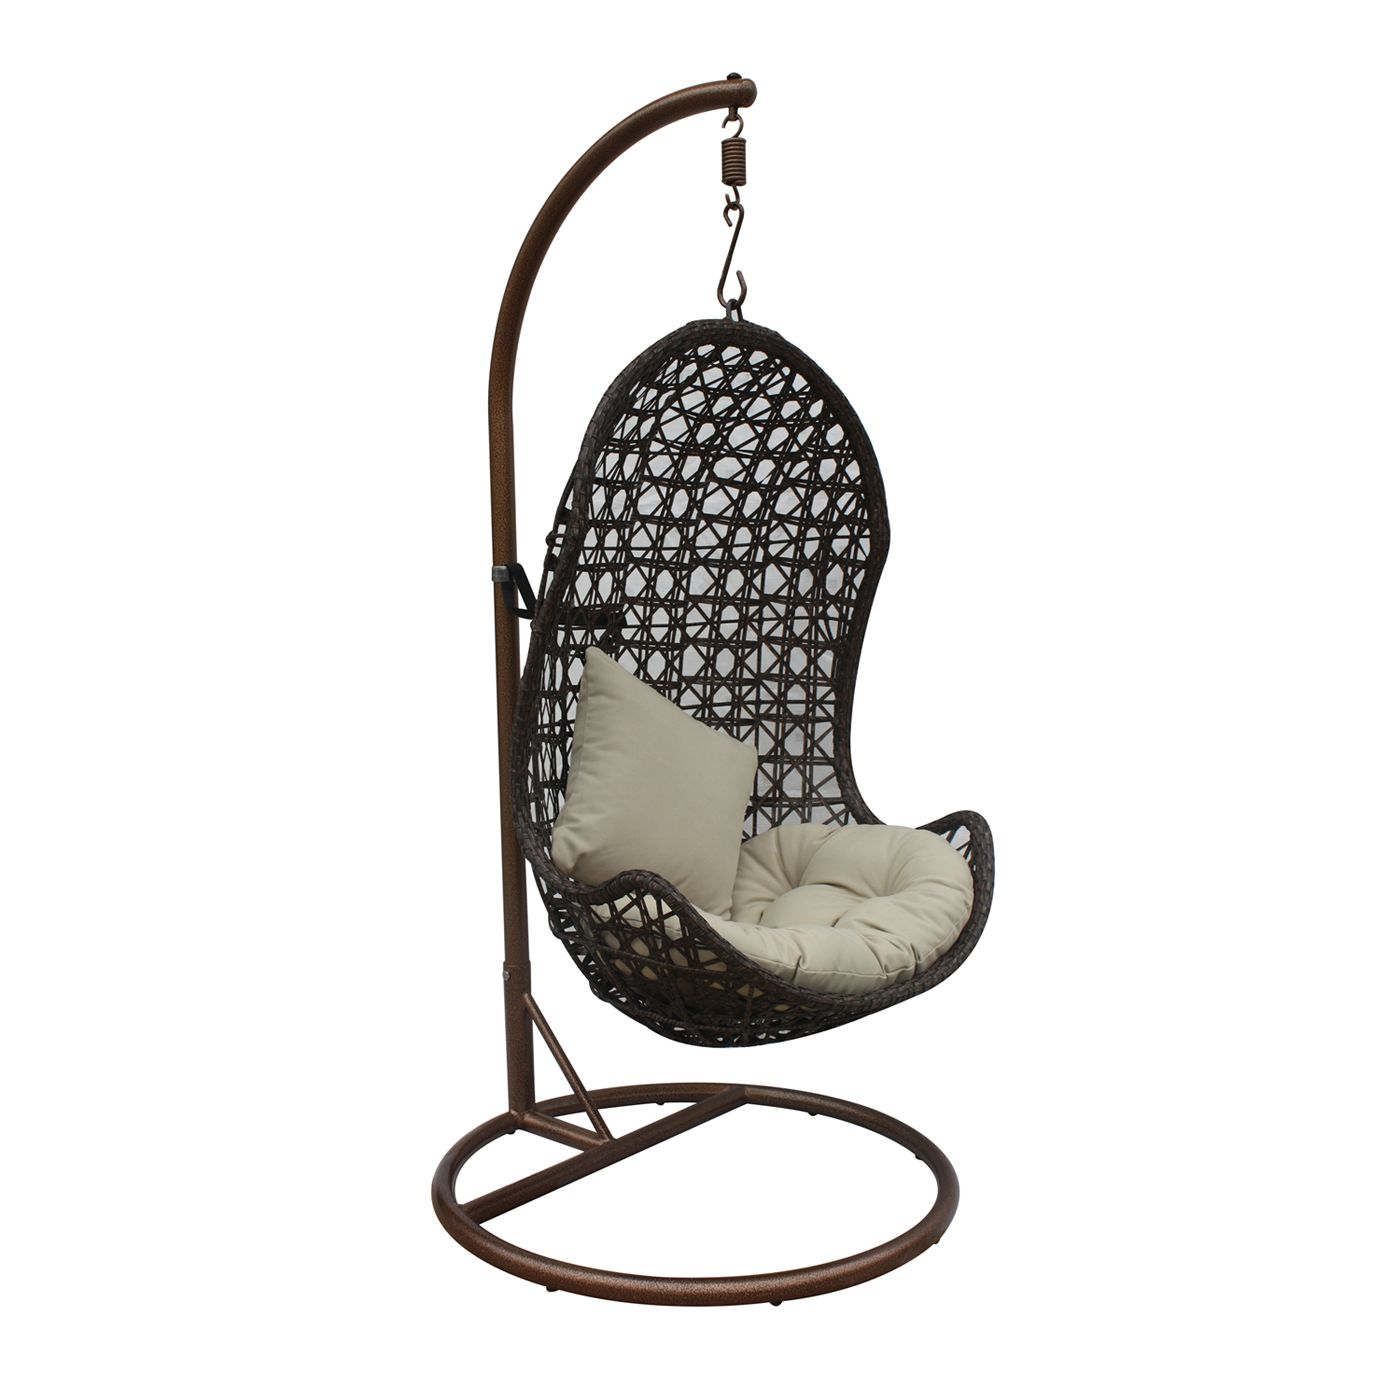 JLIP Outdoor S17761A2 Rattan Patio Hanging Chair with